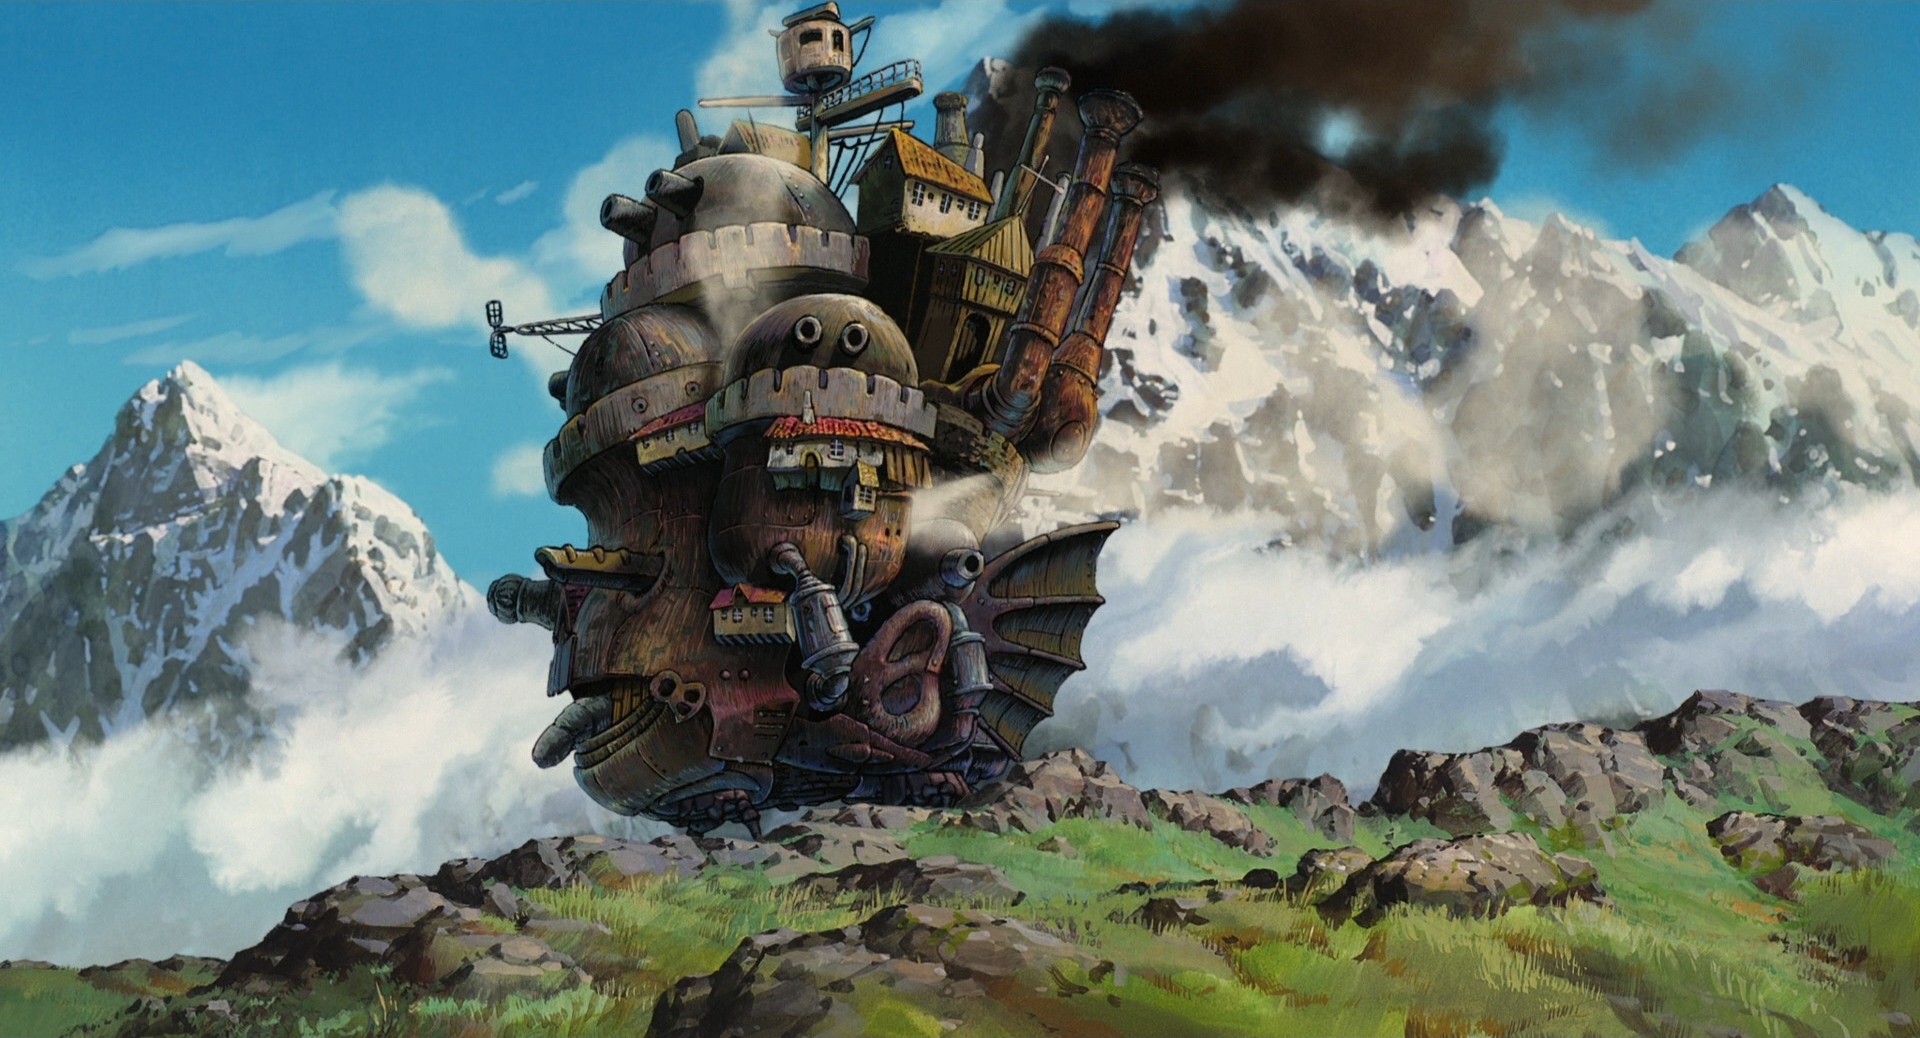 Howl's Moving Castle Wallpapers High Quality